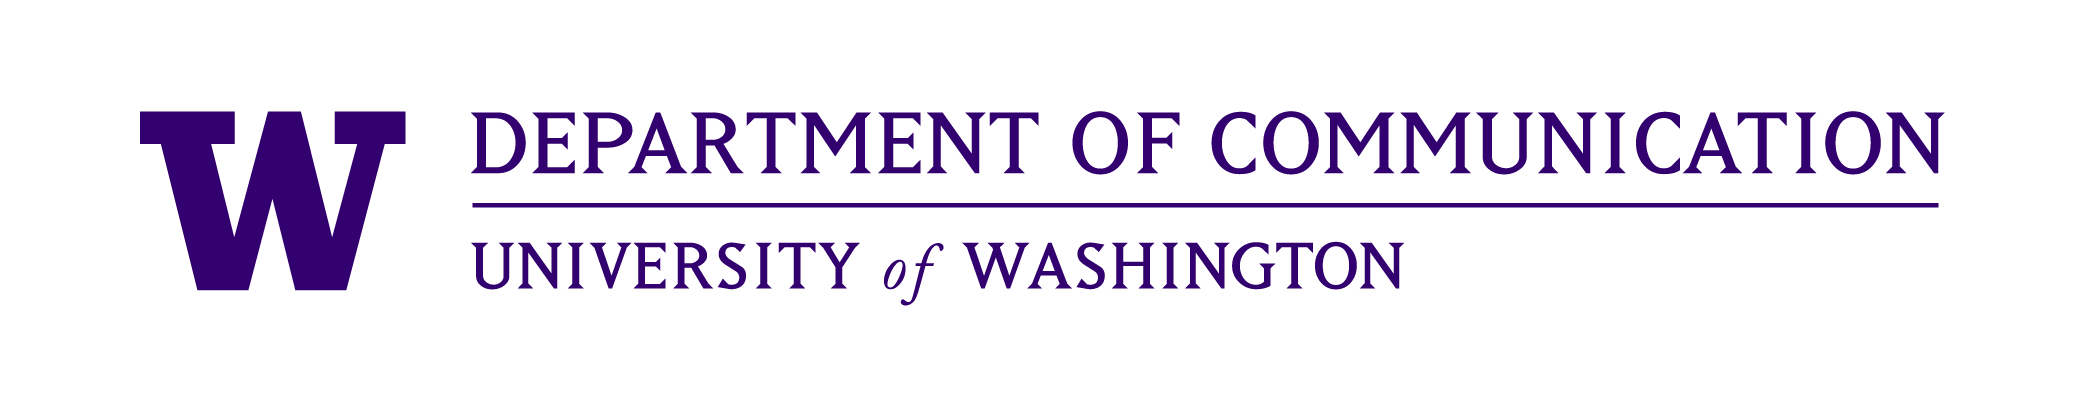 University of Washington Communications Department